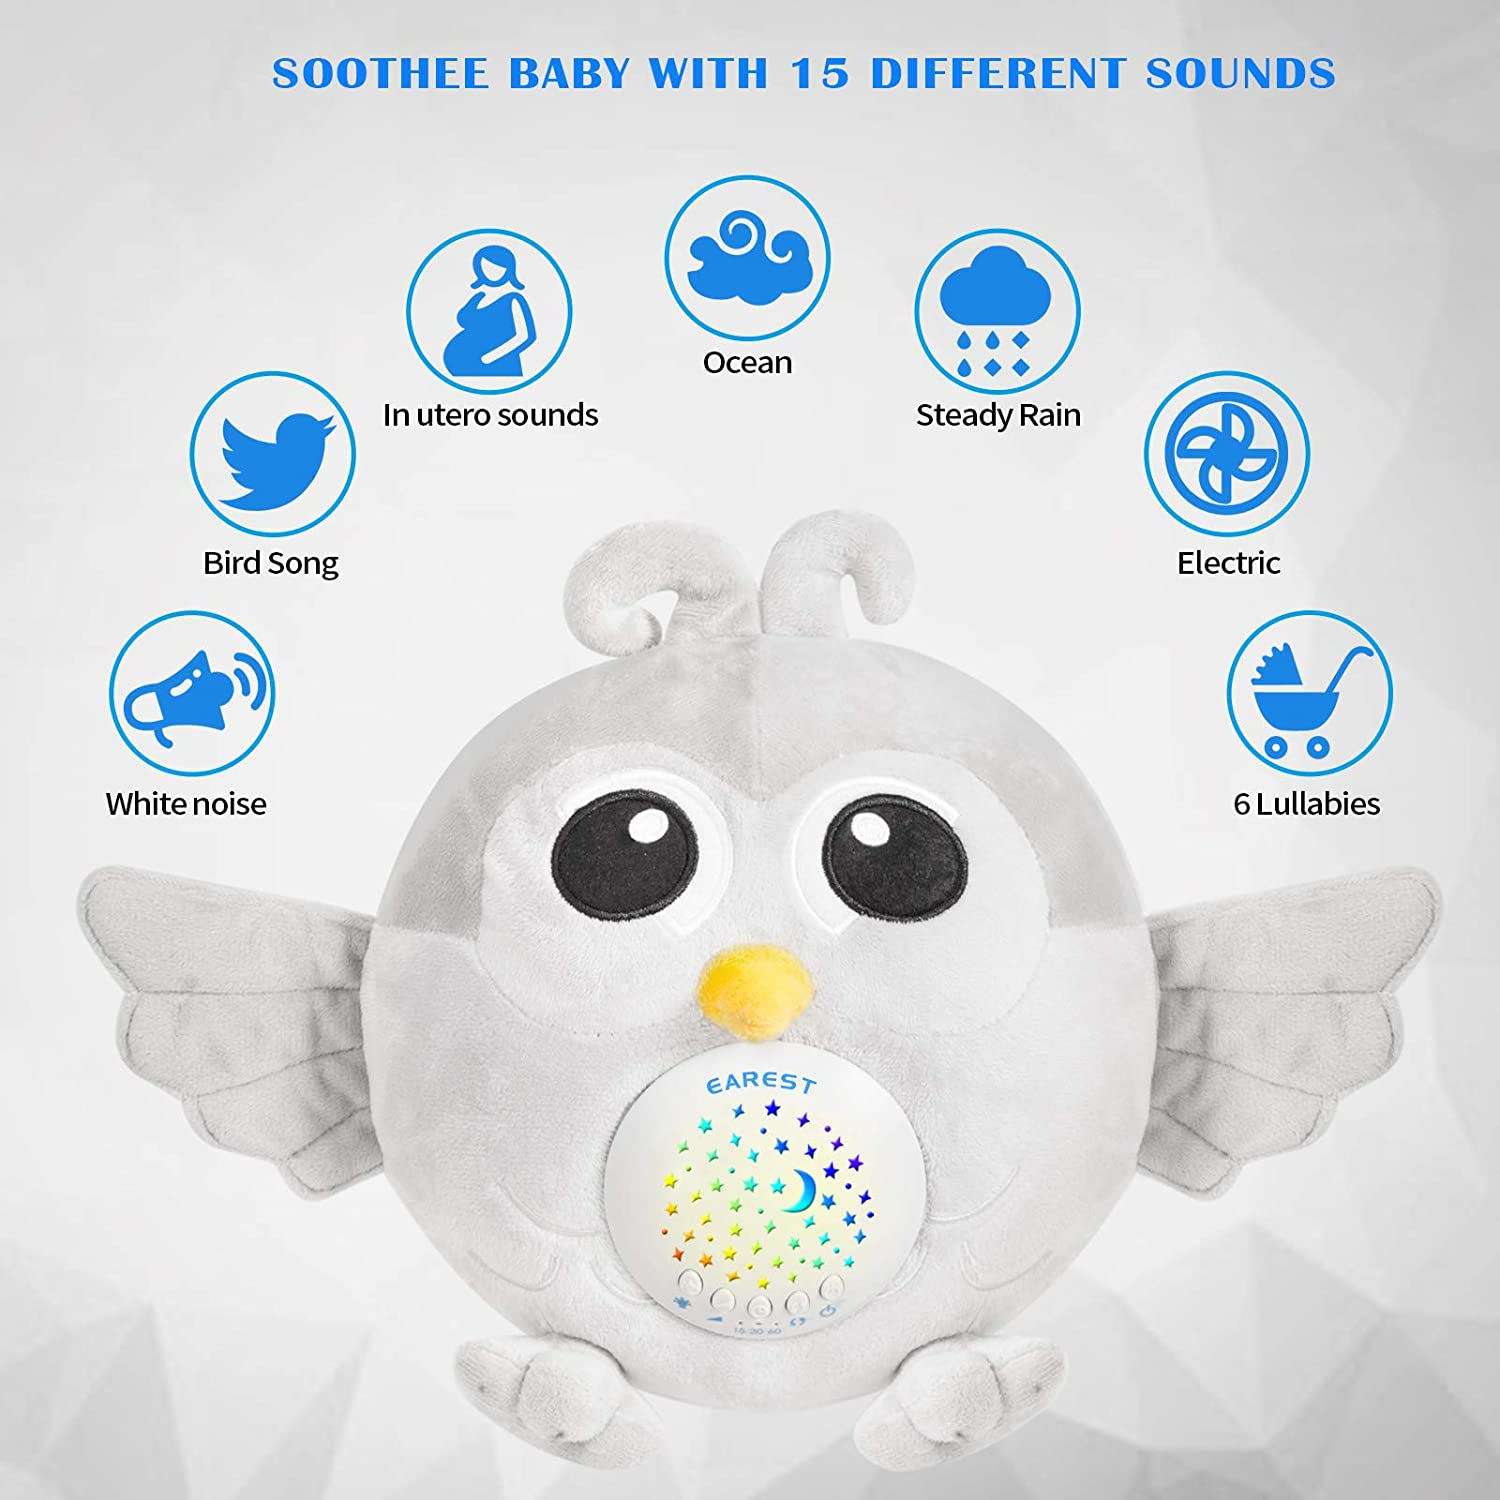 Toddlers /& Kids White Noise Sound Machine Baby with Nightlight Star Projector /& 3 Auto Timer /&15 Lullabies Sounds EAREST Baby Sleep Soother Hedgehog Stuffed Animal Plush Toy for Babies